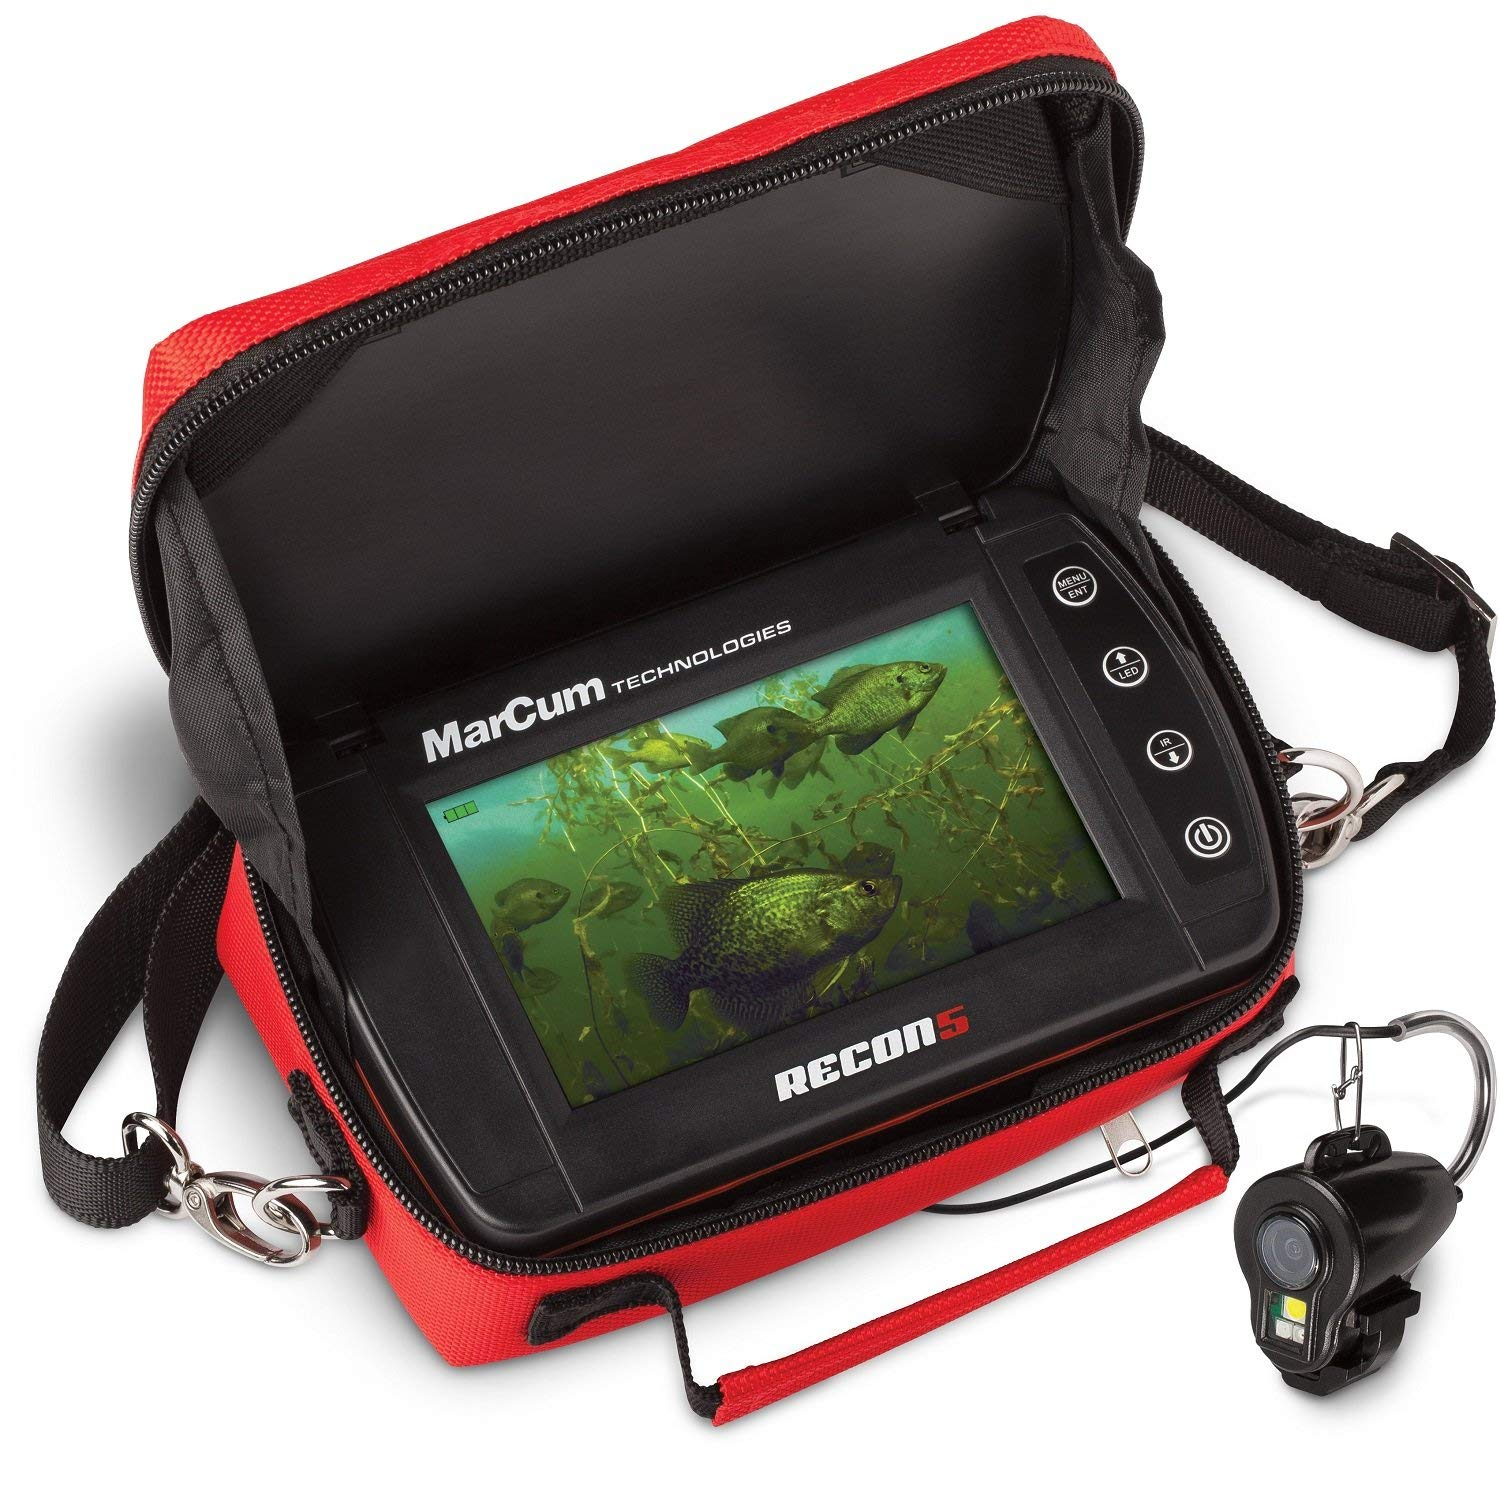 MarCum Recon 5 Underwater Camera with viewing system